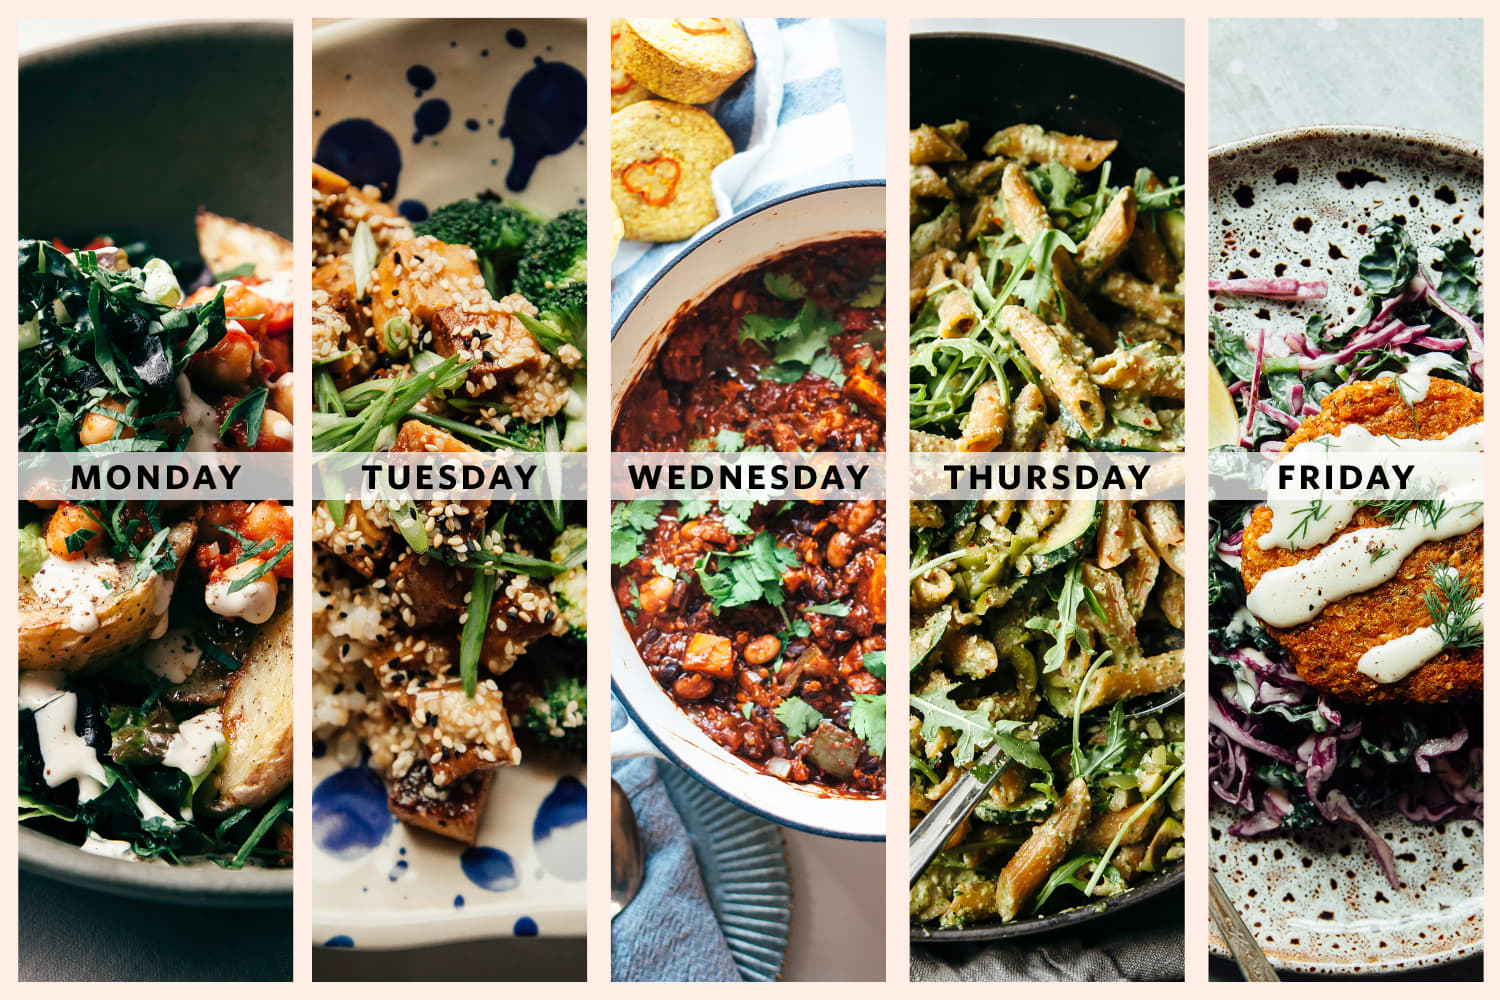 5 Simple Plant-Based Dinners from Laura Wright of The First Mess